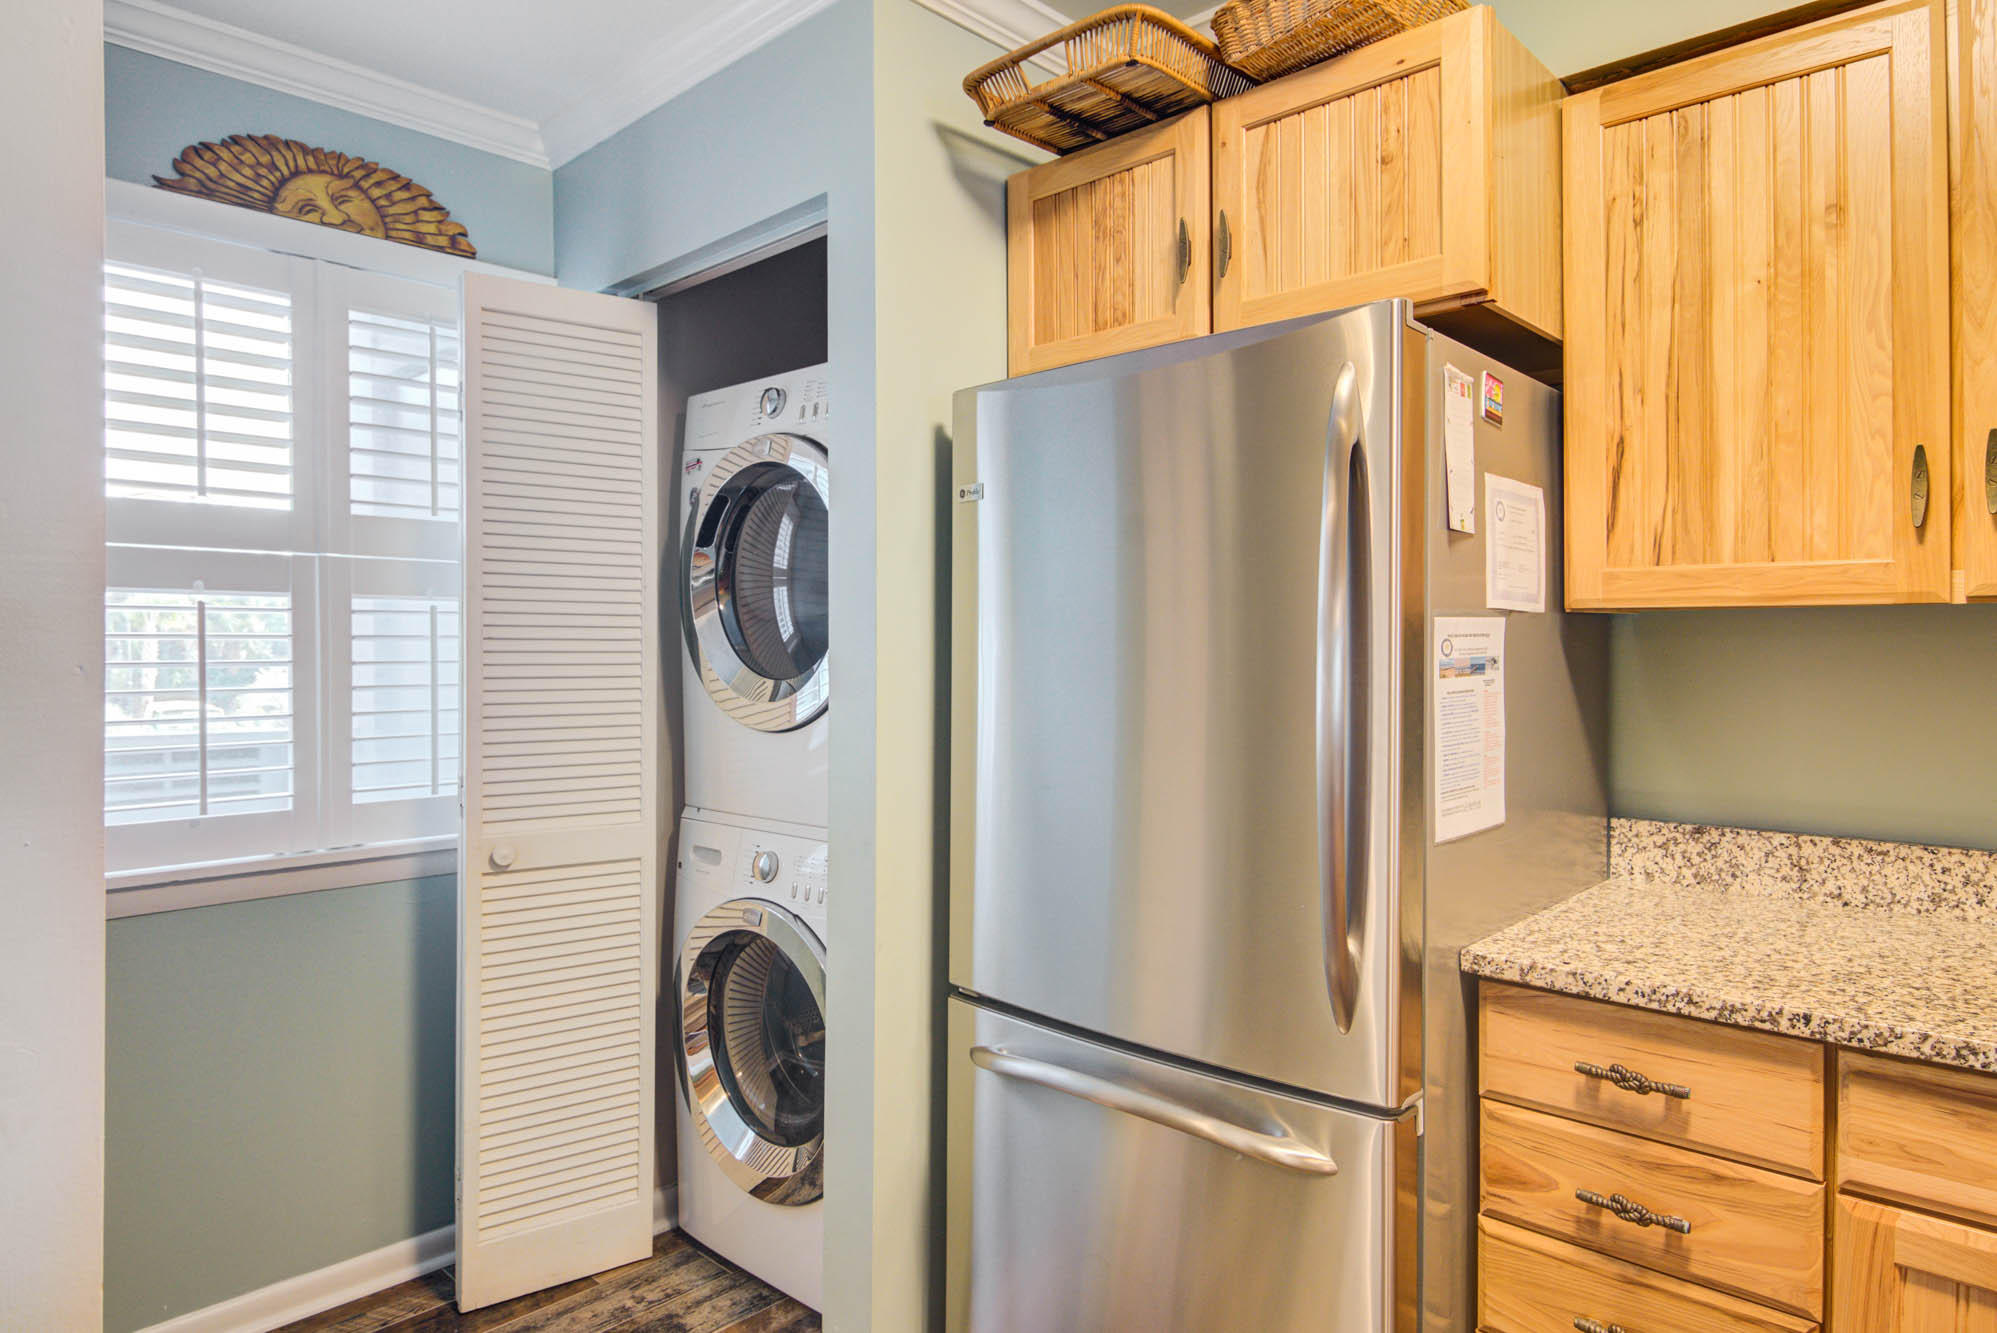 Mariners Cay Homes For Sale - 19 Mariners Cay, Folly Beach, SC - 17